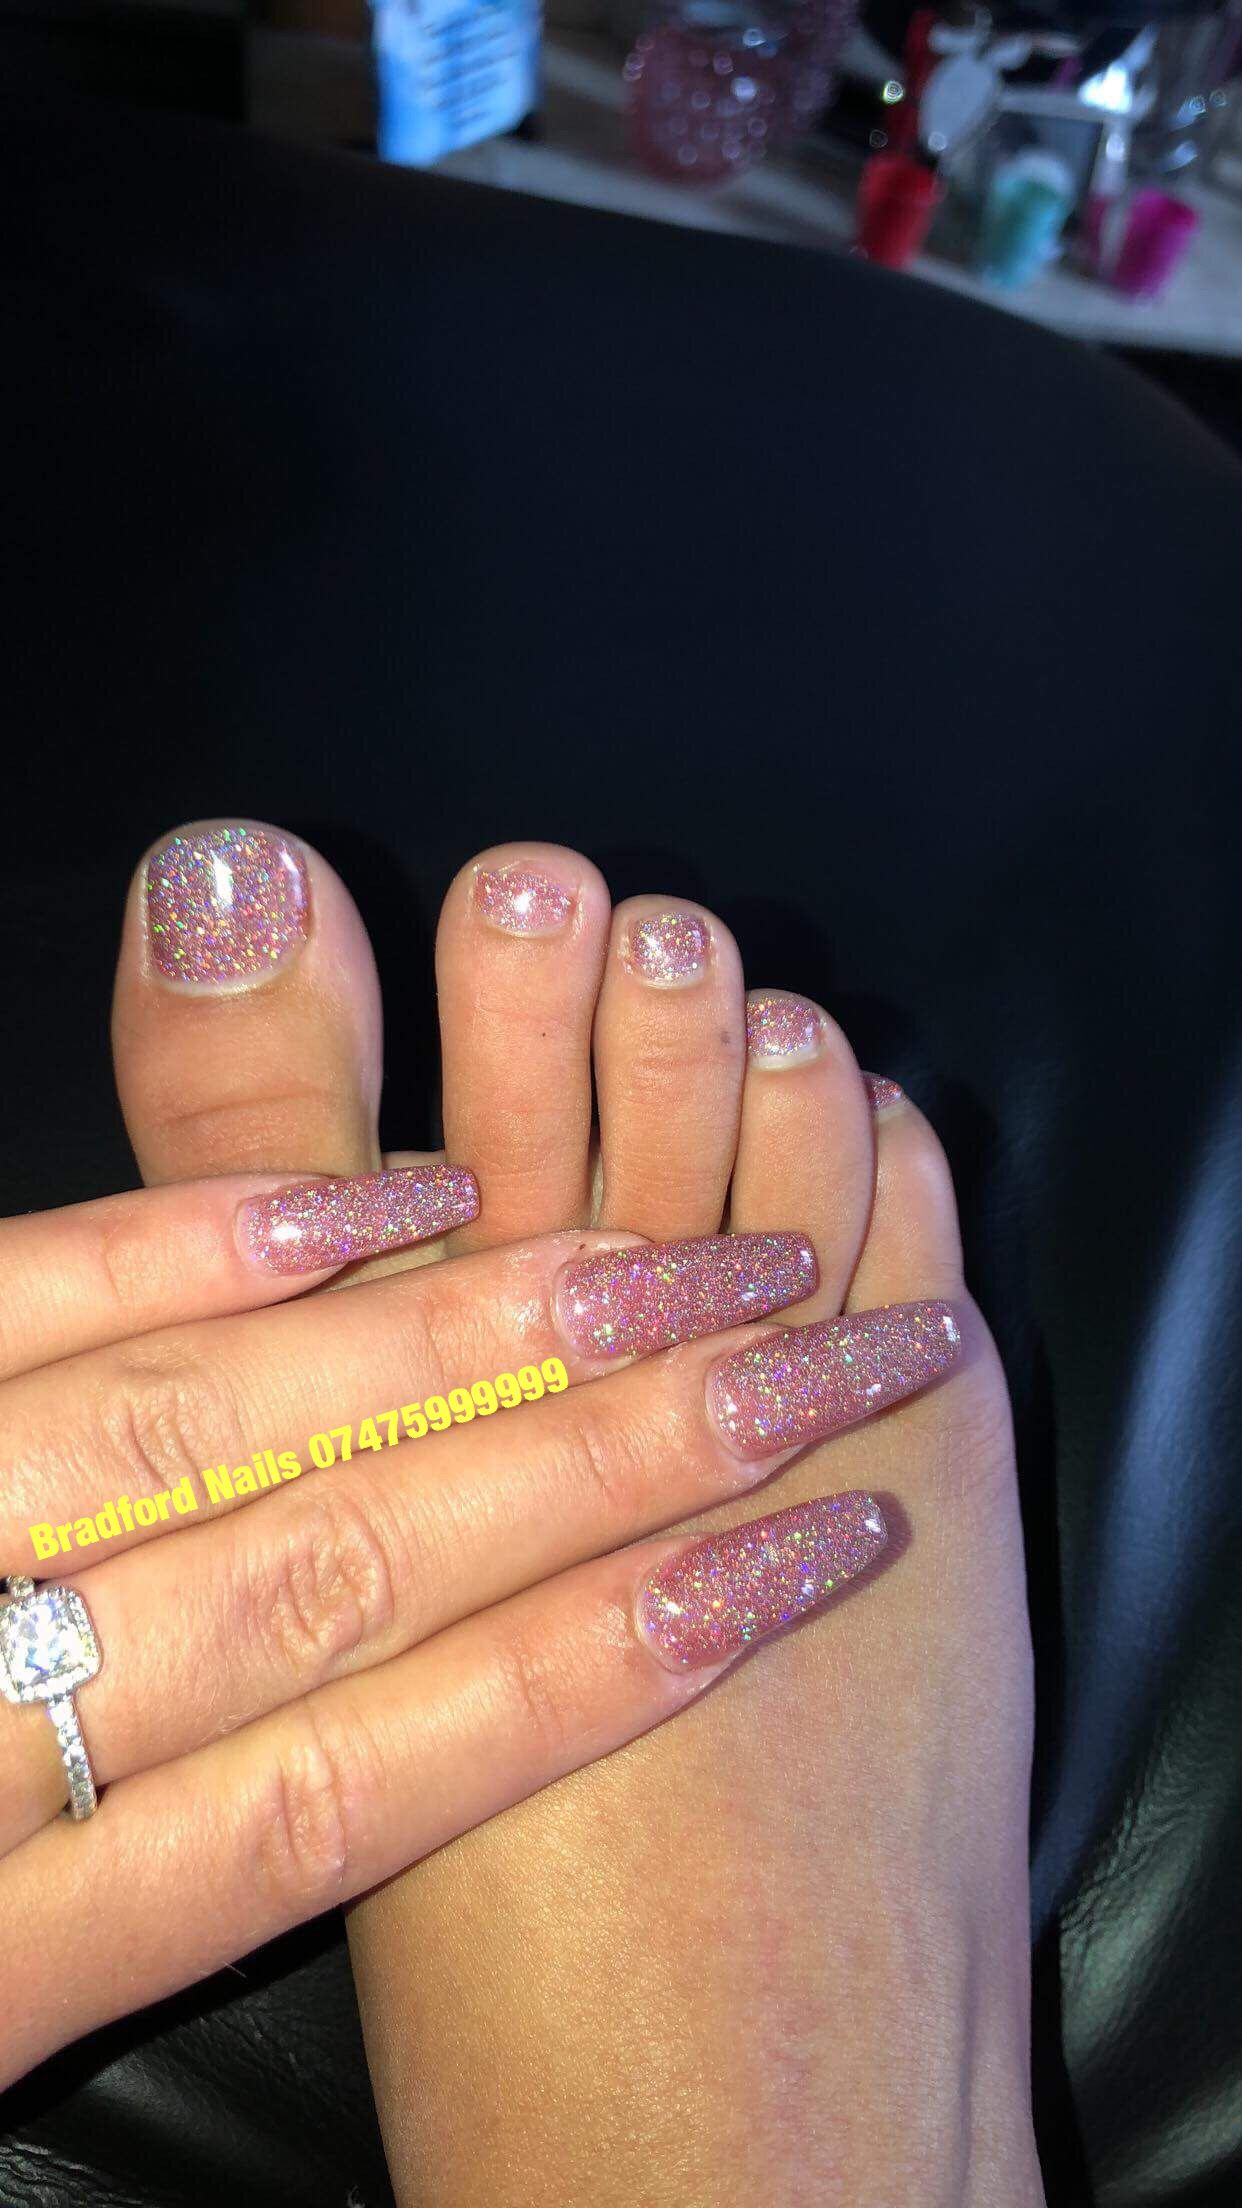 New Glitter Gel Polish Client Sent Me Photo Thank You Bradford Nails Salon We Locate In Br Glitter Gel Polish Nail Services High Quality Nails